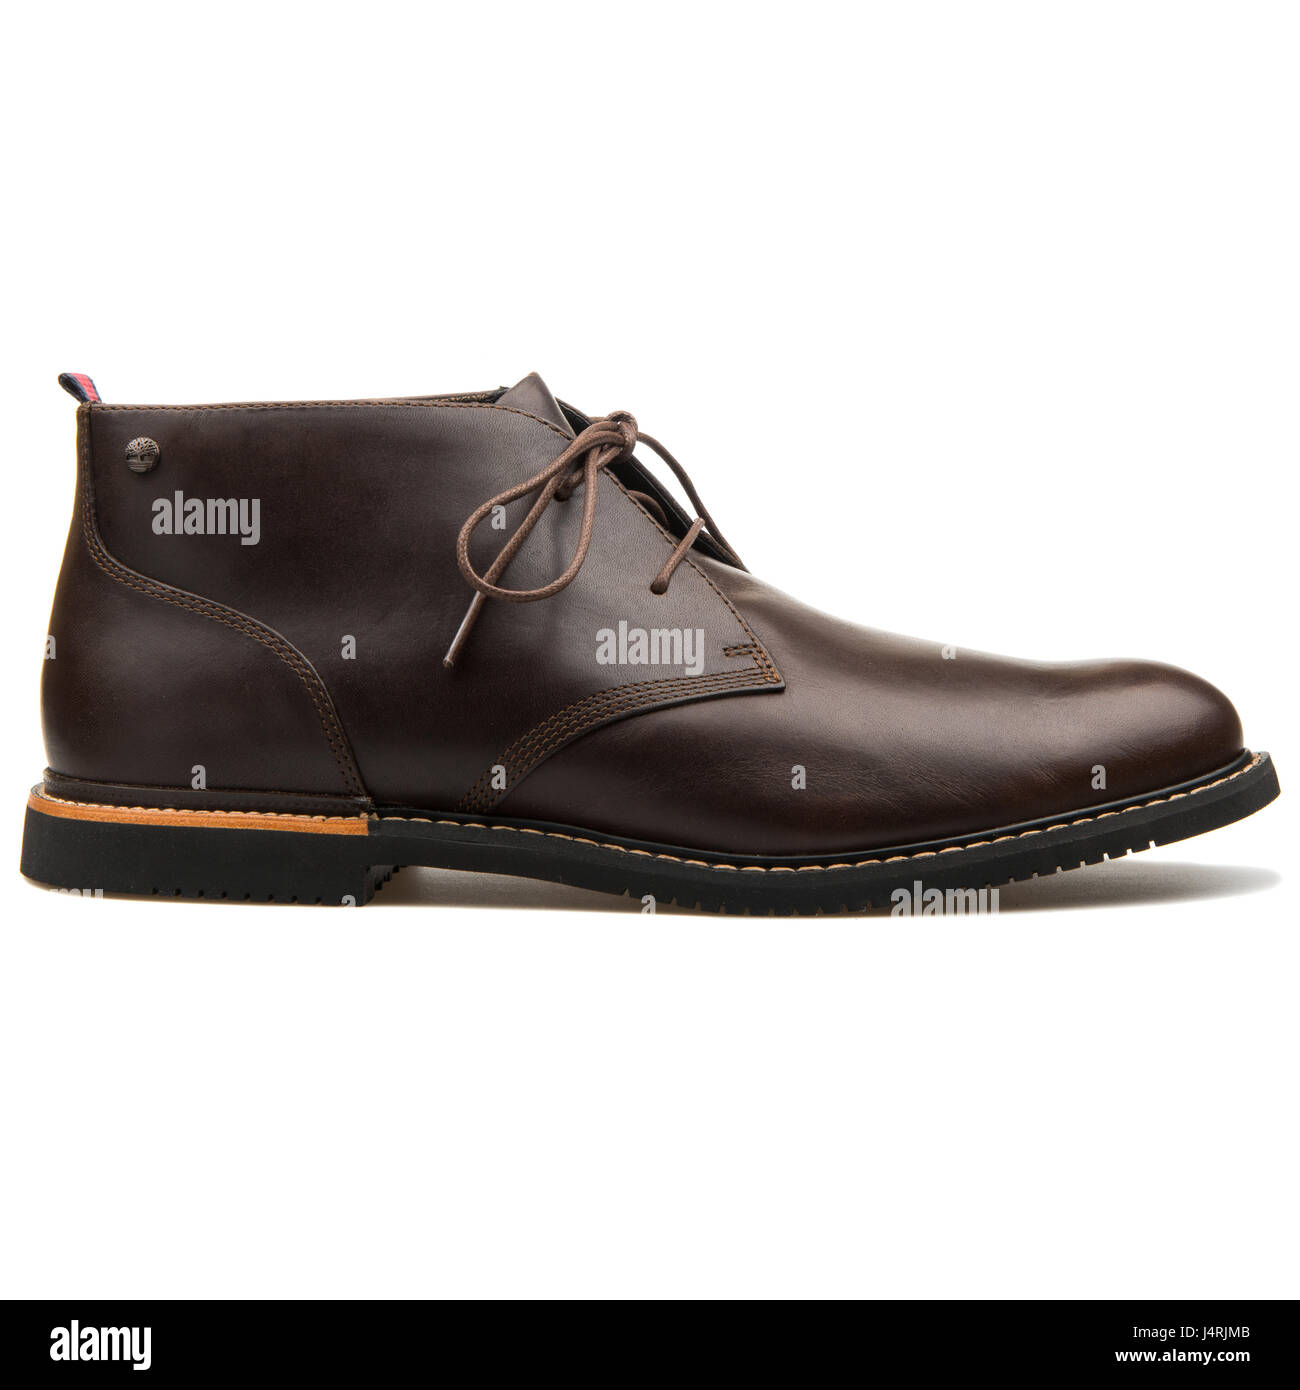 682c259689ac3 Timberland Earthkeepers Brook Park Leather Chukka Shoes Brown - 5511A -  Stock Image